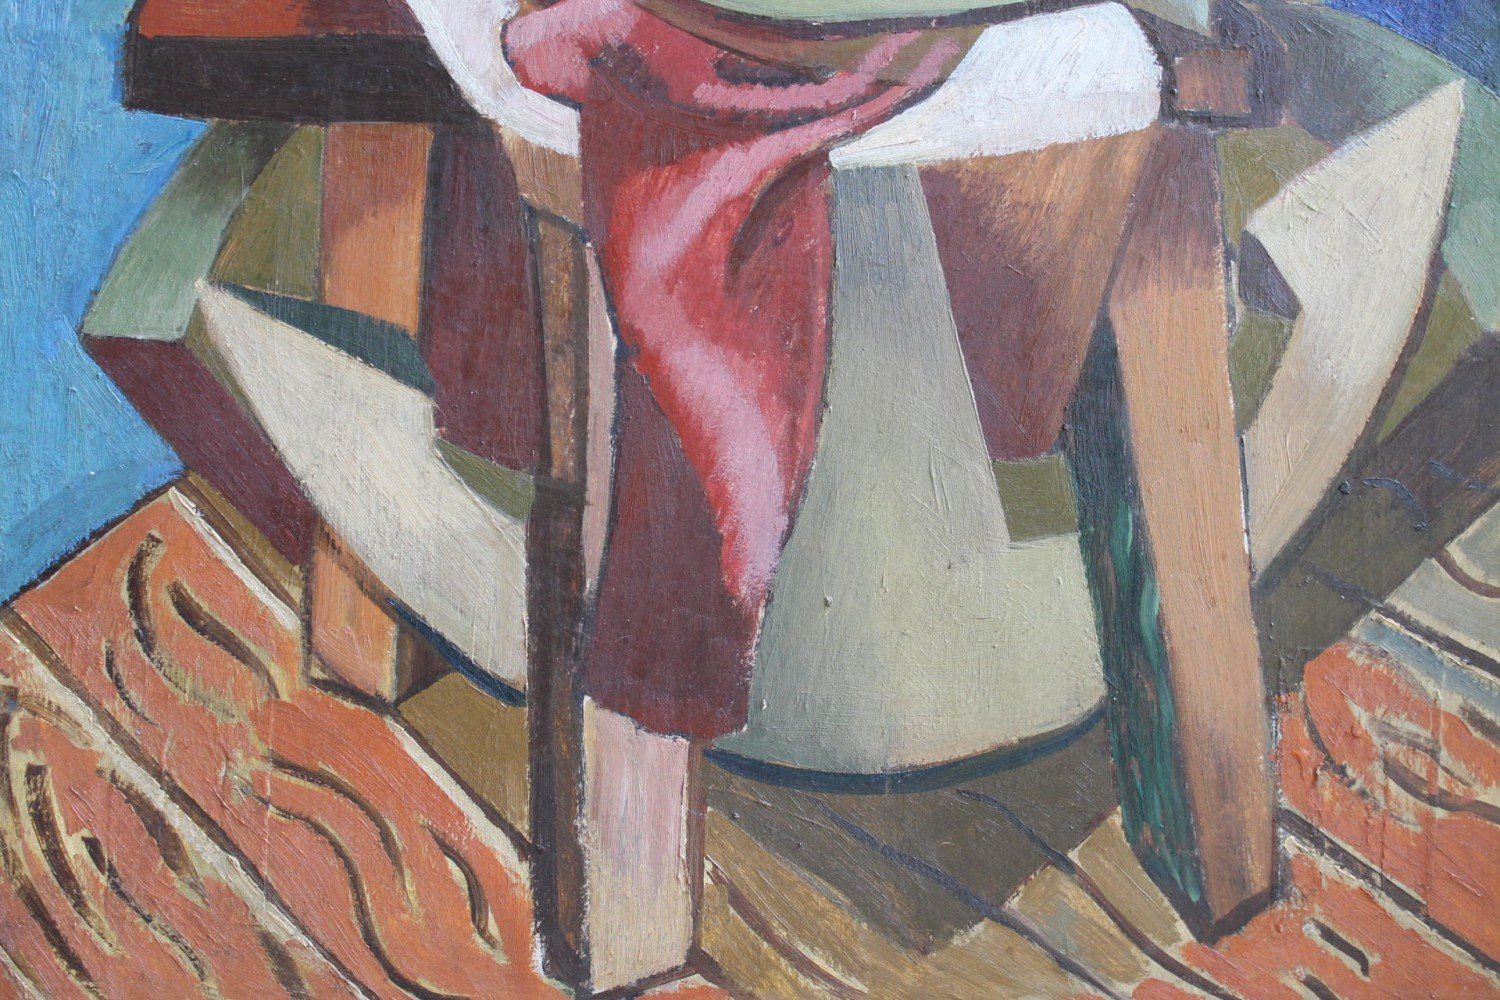 Cubist Still Life with Rope, Chair and Theatrical Mask by 20th Century American School